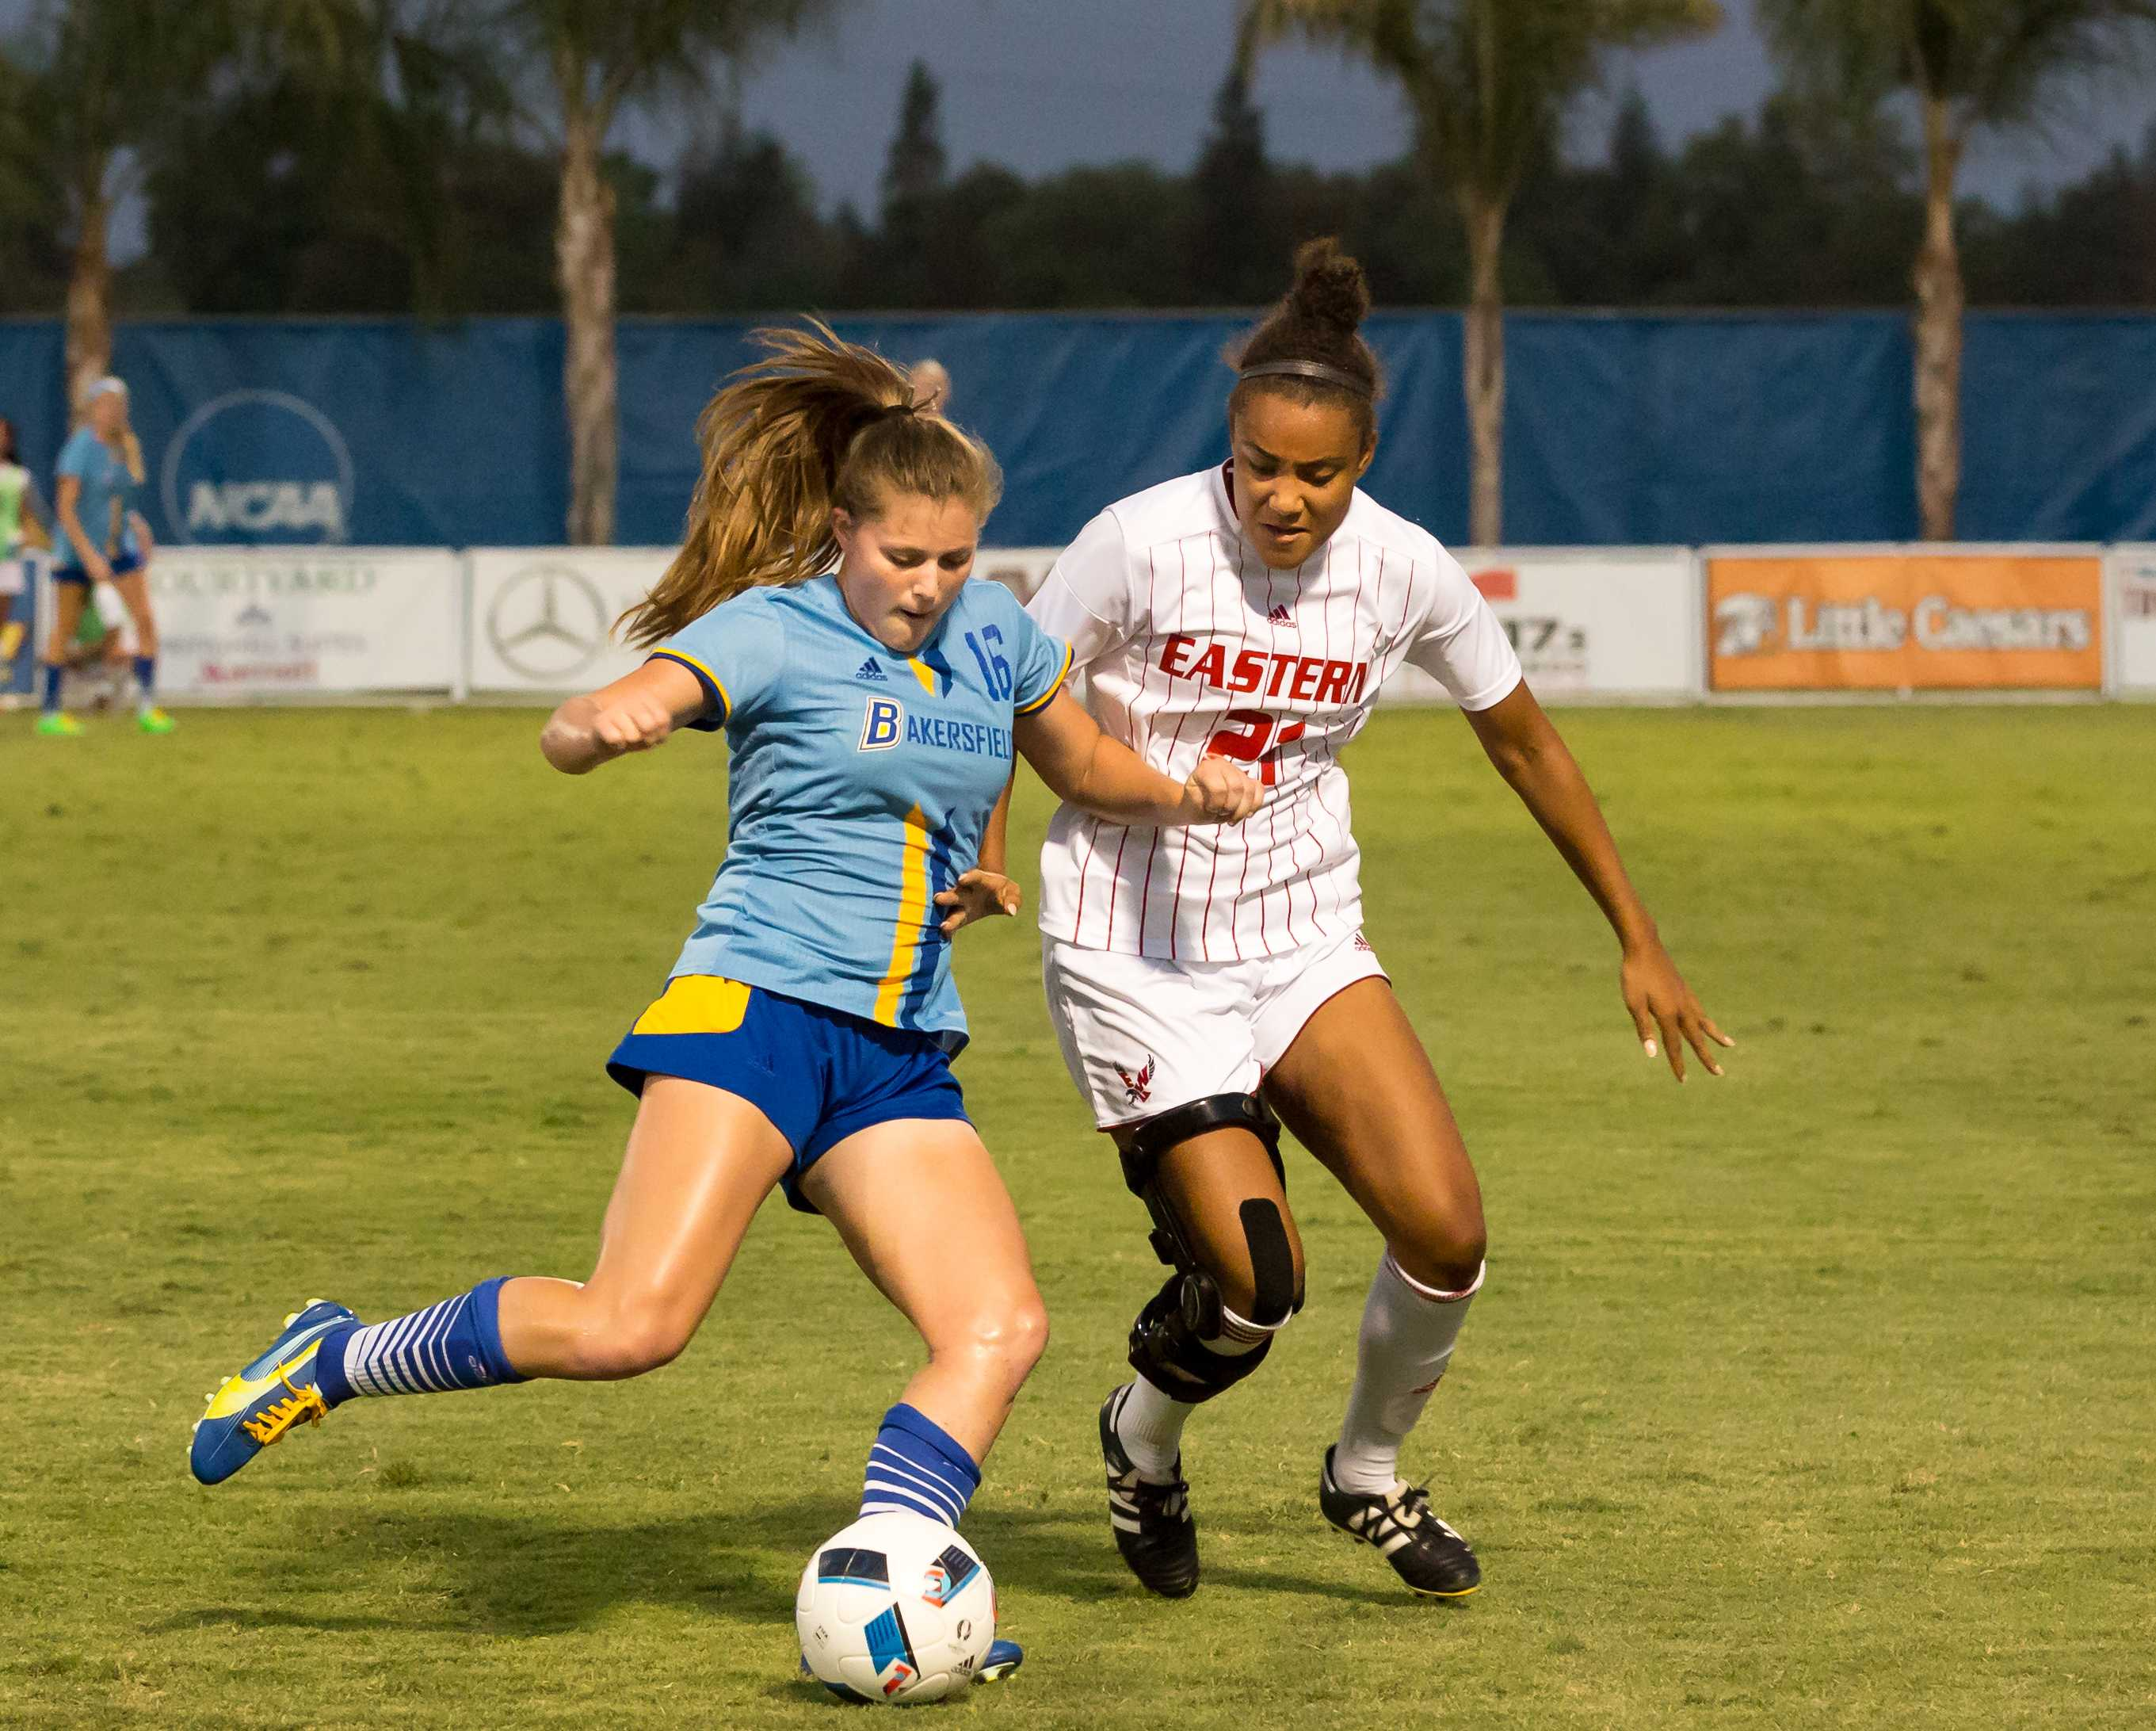 CSUB wins behind five points from Delgado